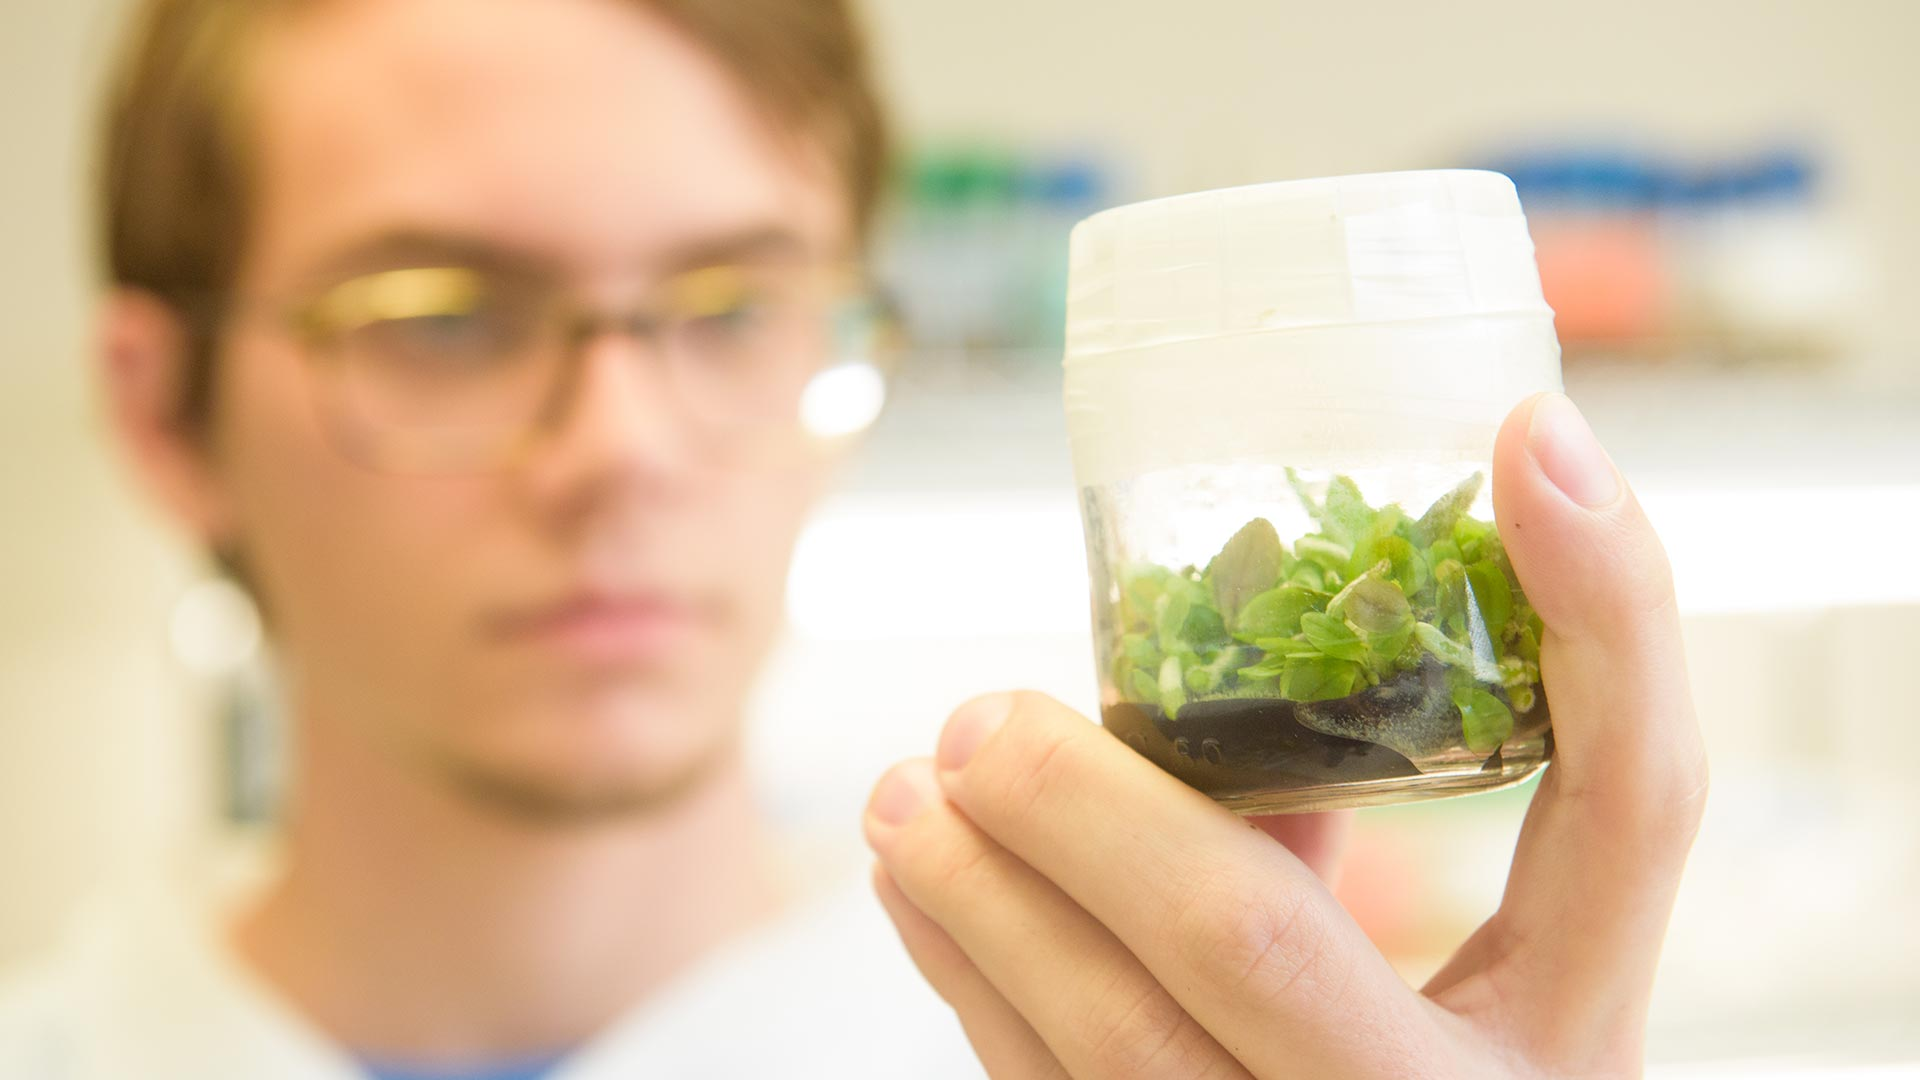 student examining a plant sample